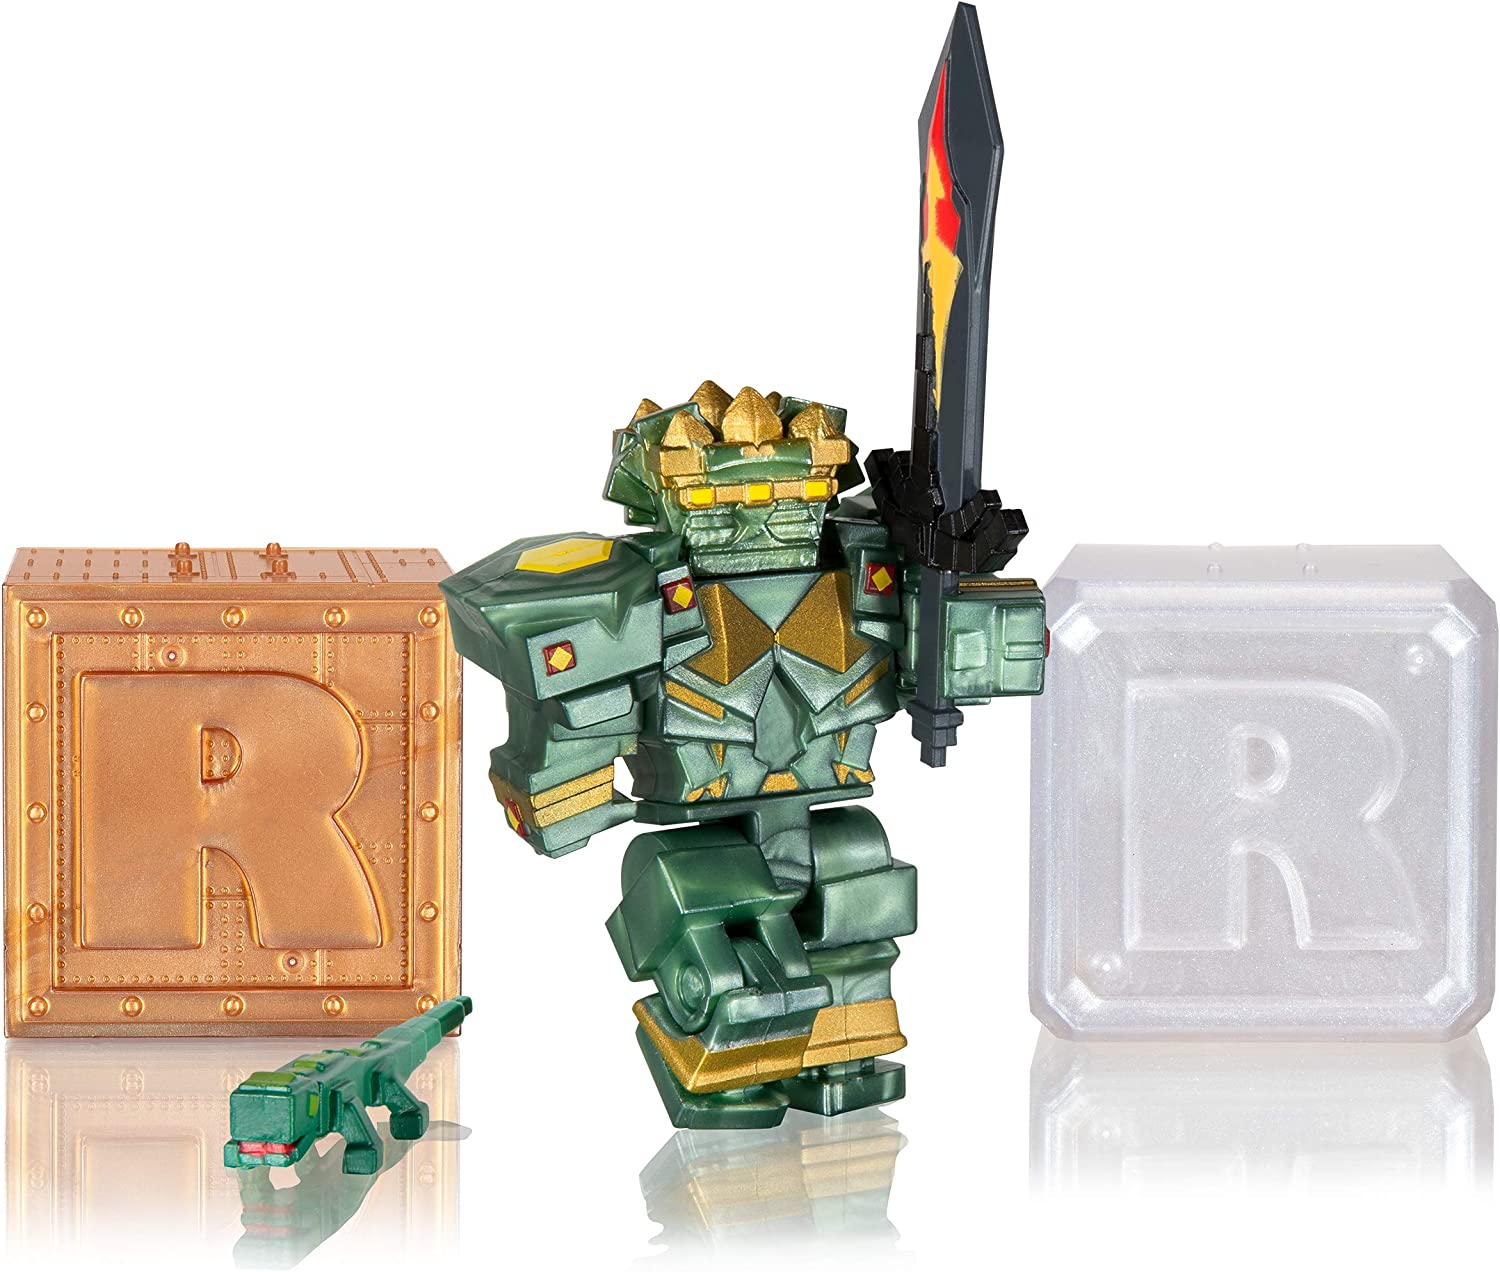 Weapon Box Roblox Roblox Action Collection Fantastic Frontier Guardian Set Figure Pack Two Mystery Box Figure Bundle Includes 3 Exclusive Virtual Items Action Toy Figures Amazon Canada